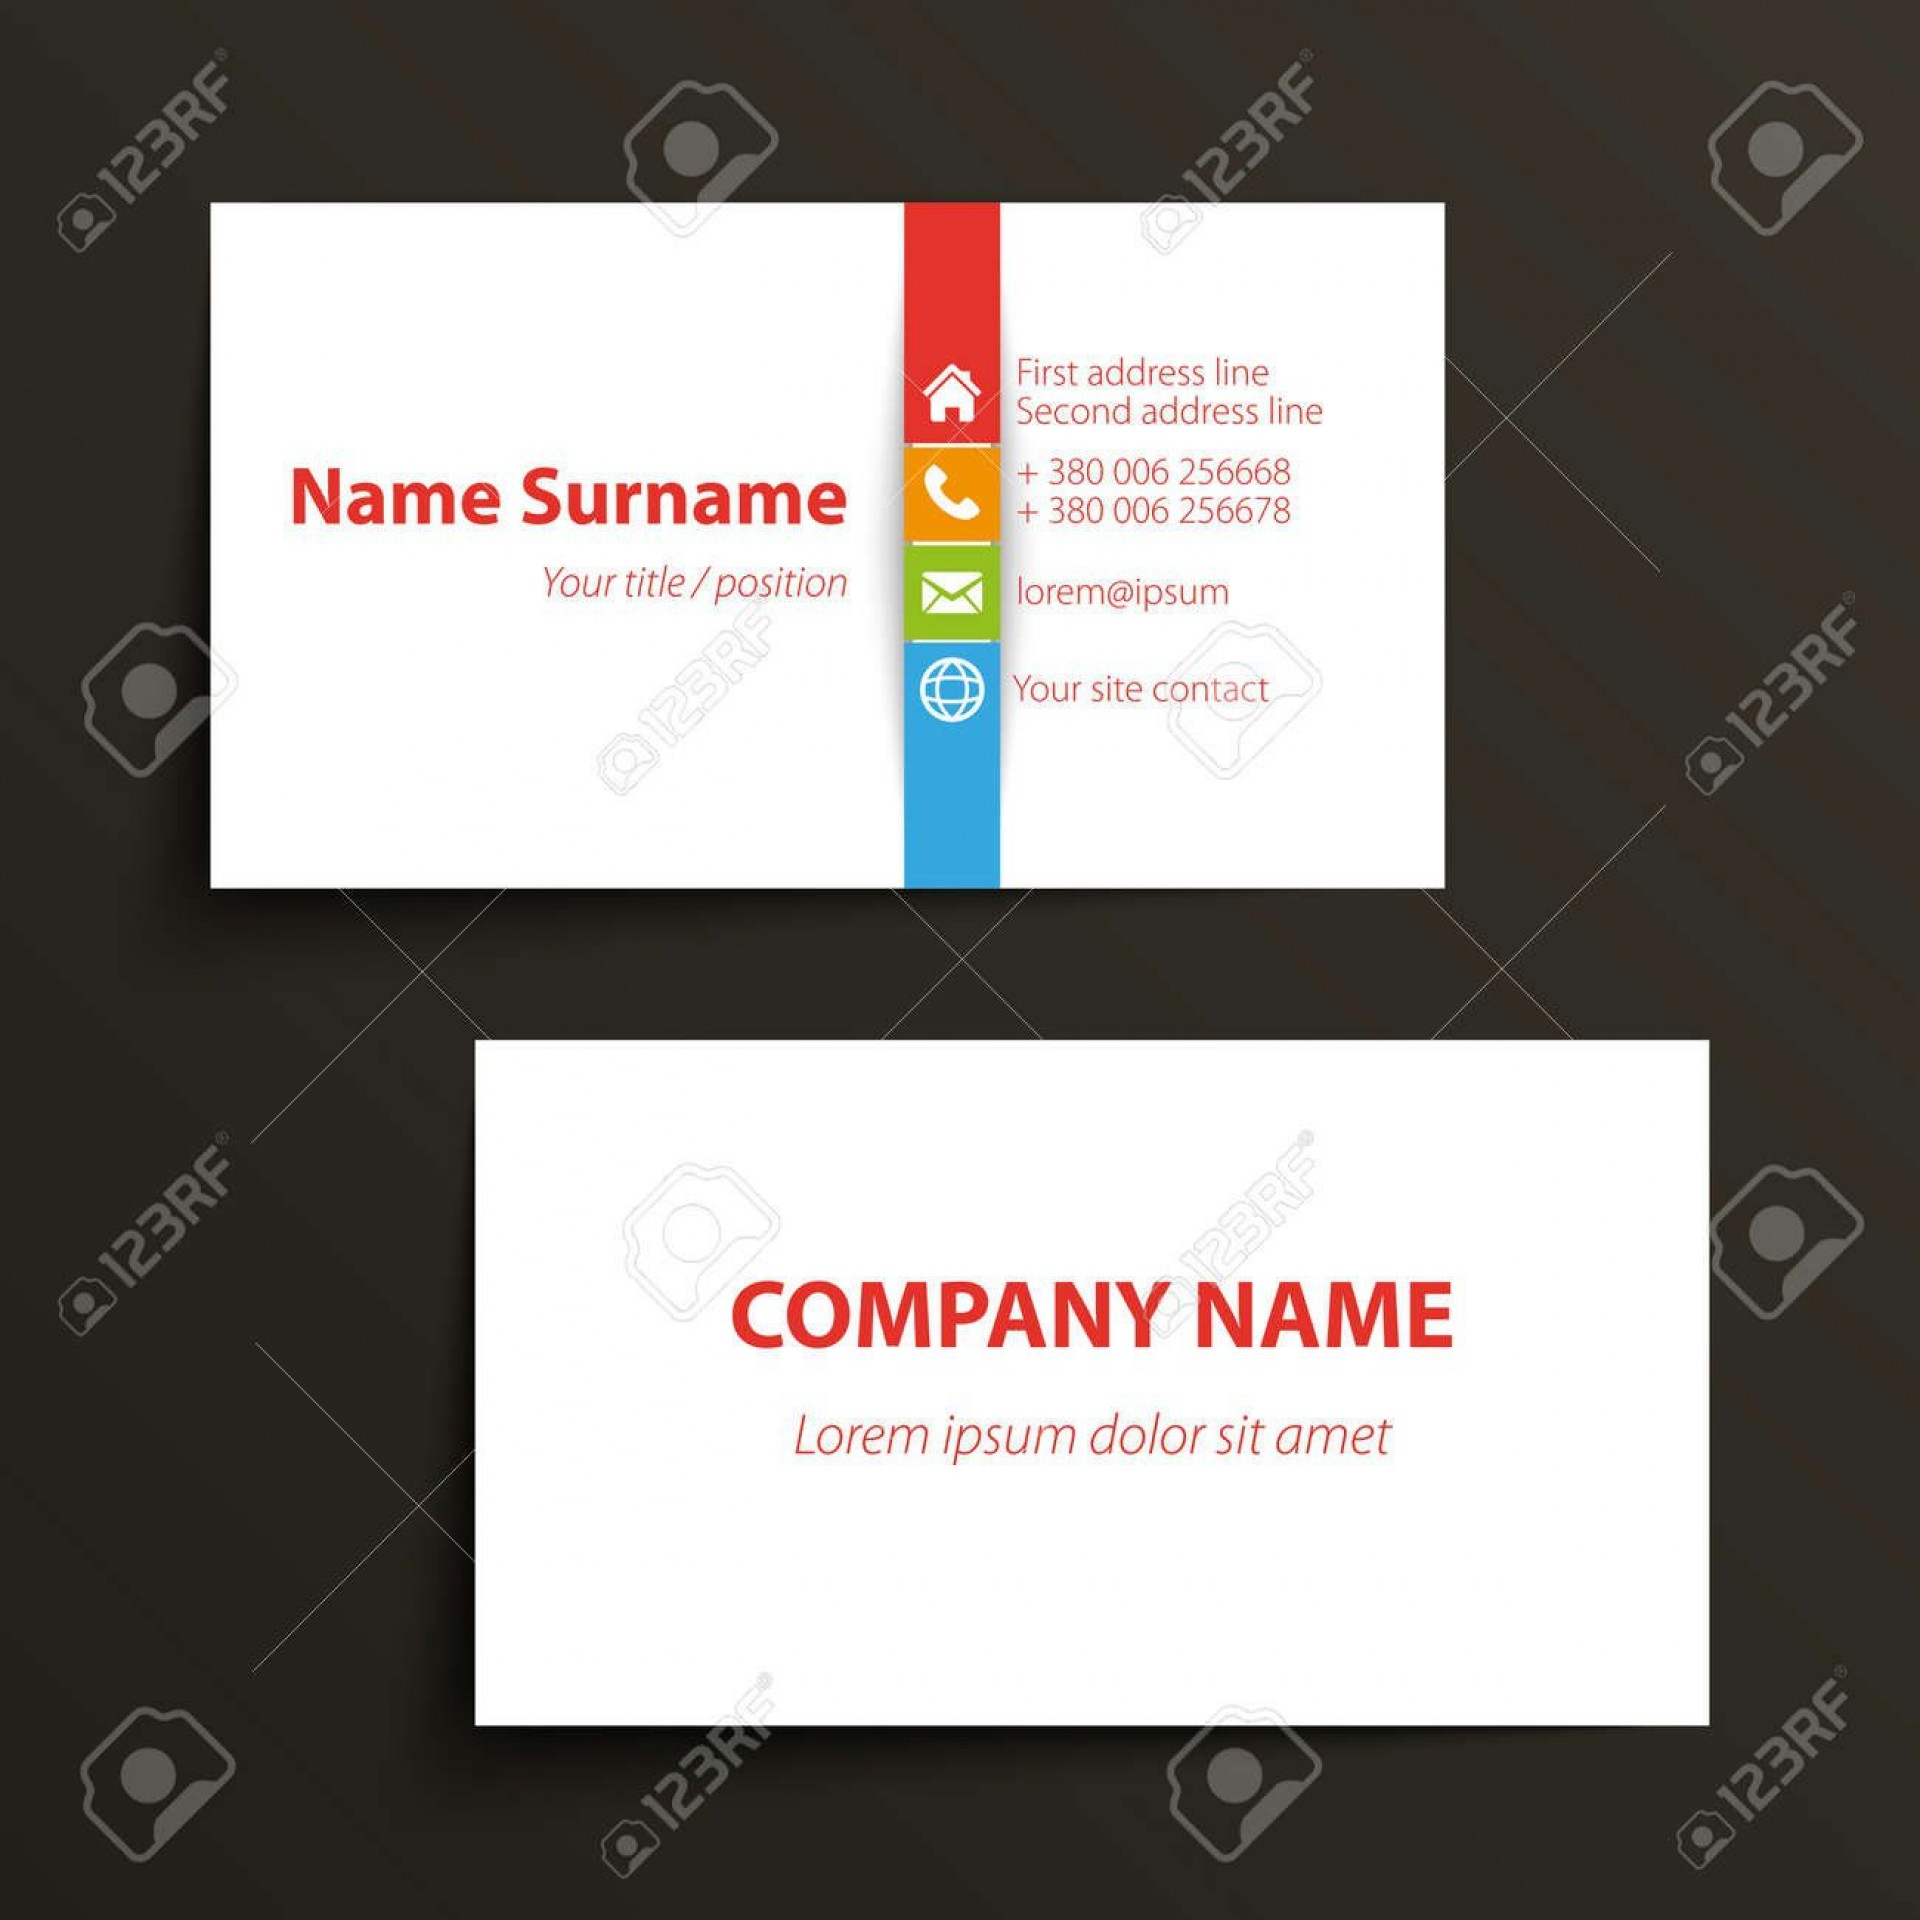 002 Fantastic Simple Visiting Card Template Picture  Templates Busines Psd Design File Free Download1920